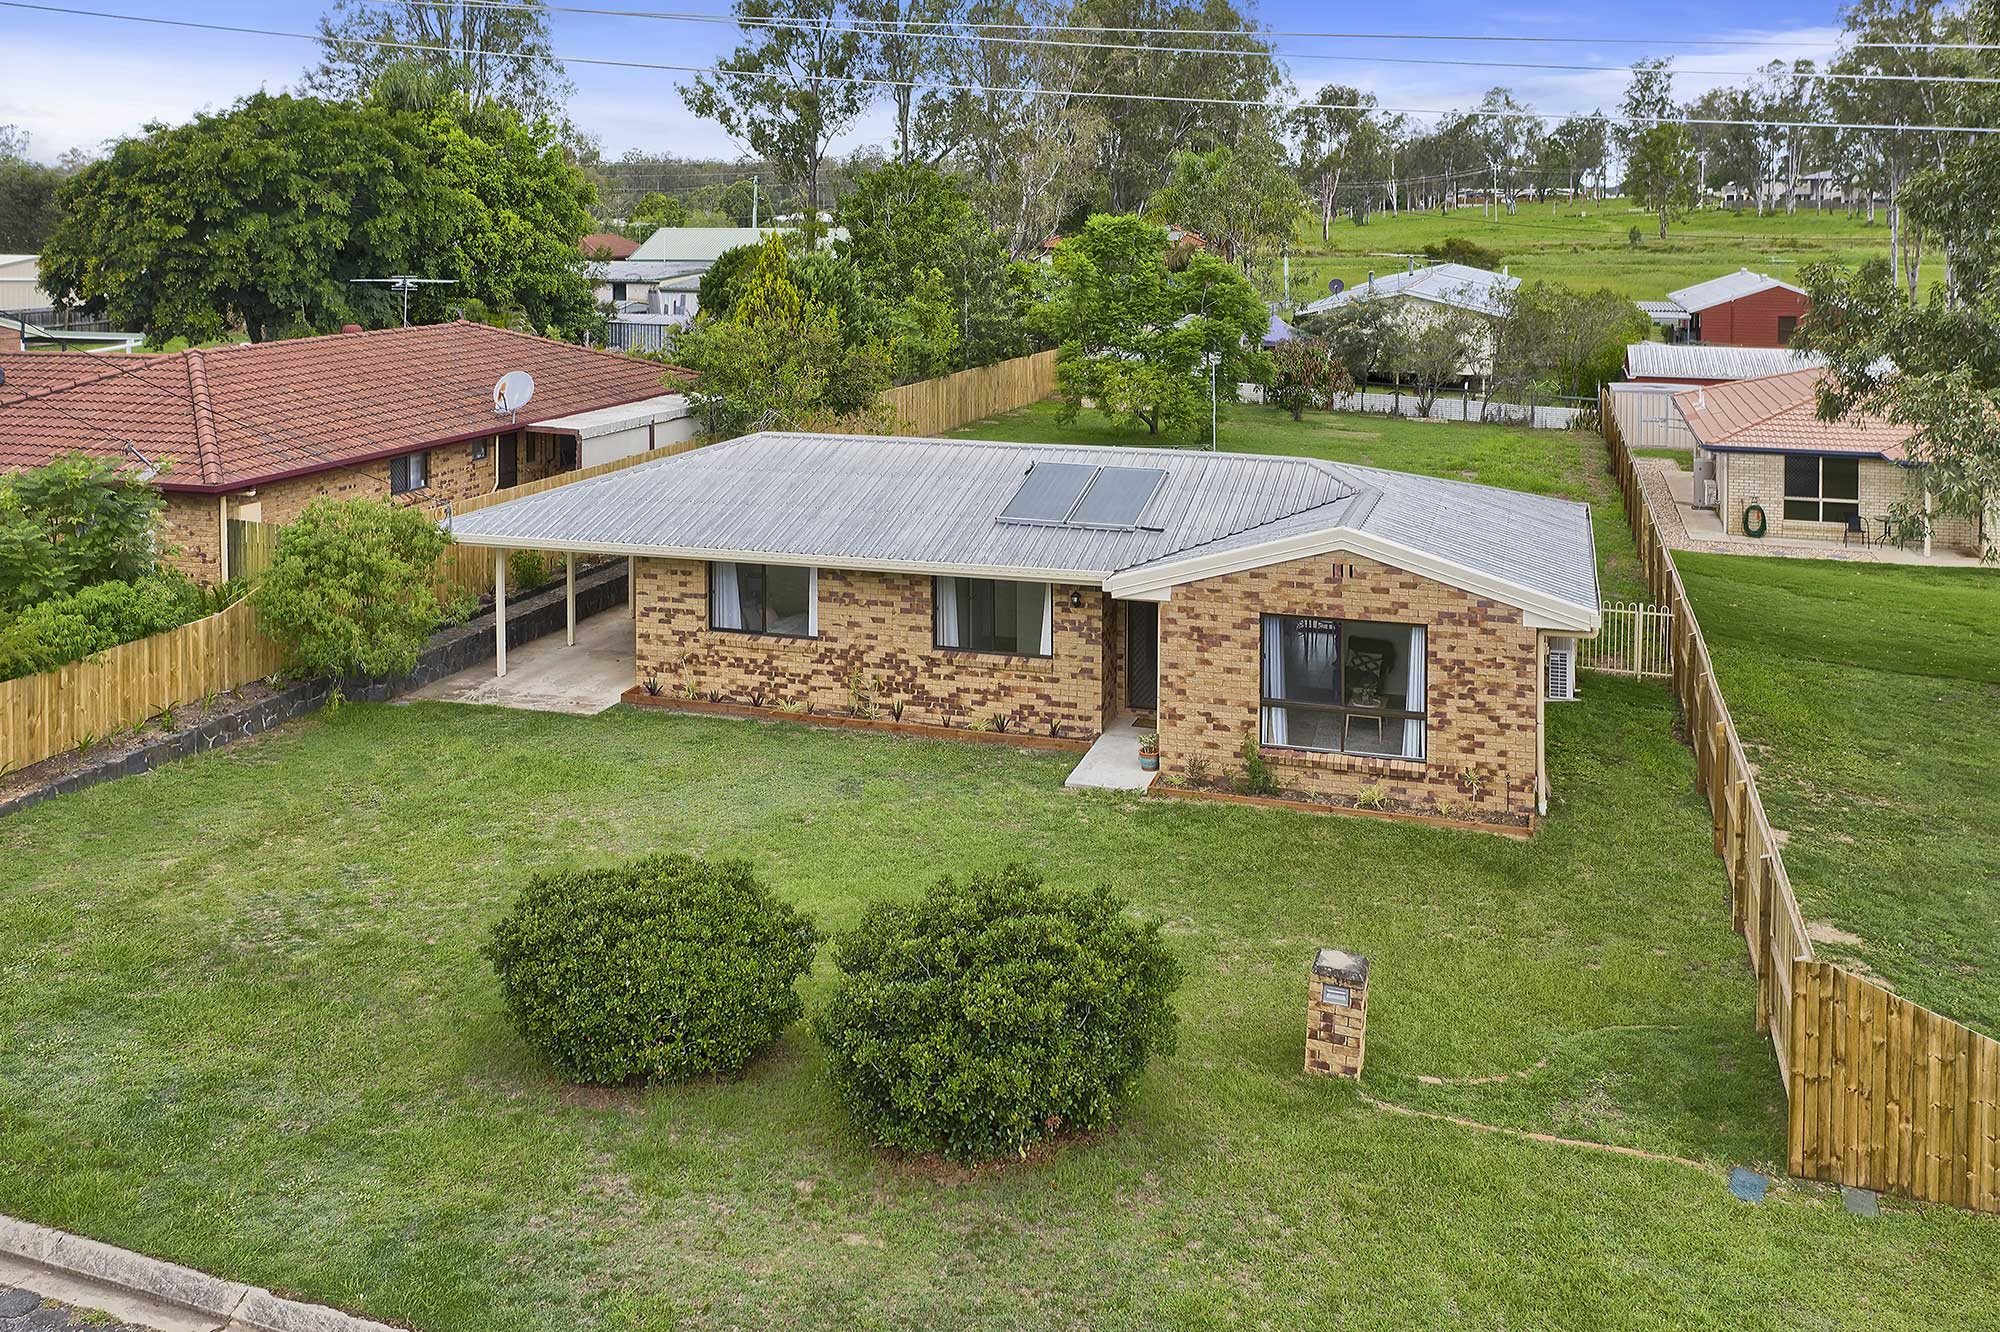 Acreage Real Estate Drone Photography Sales St Jimboomba